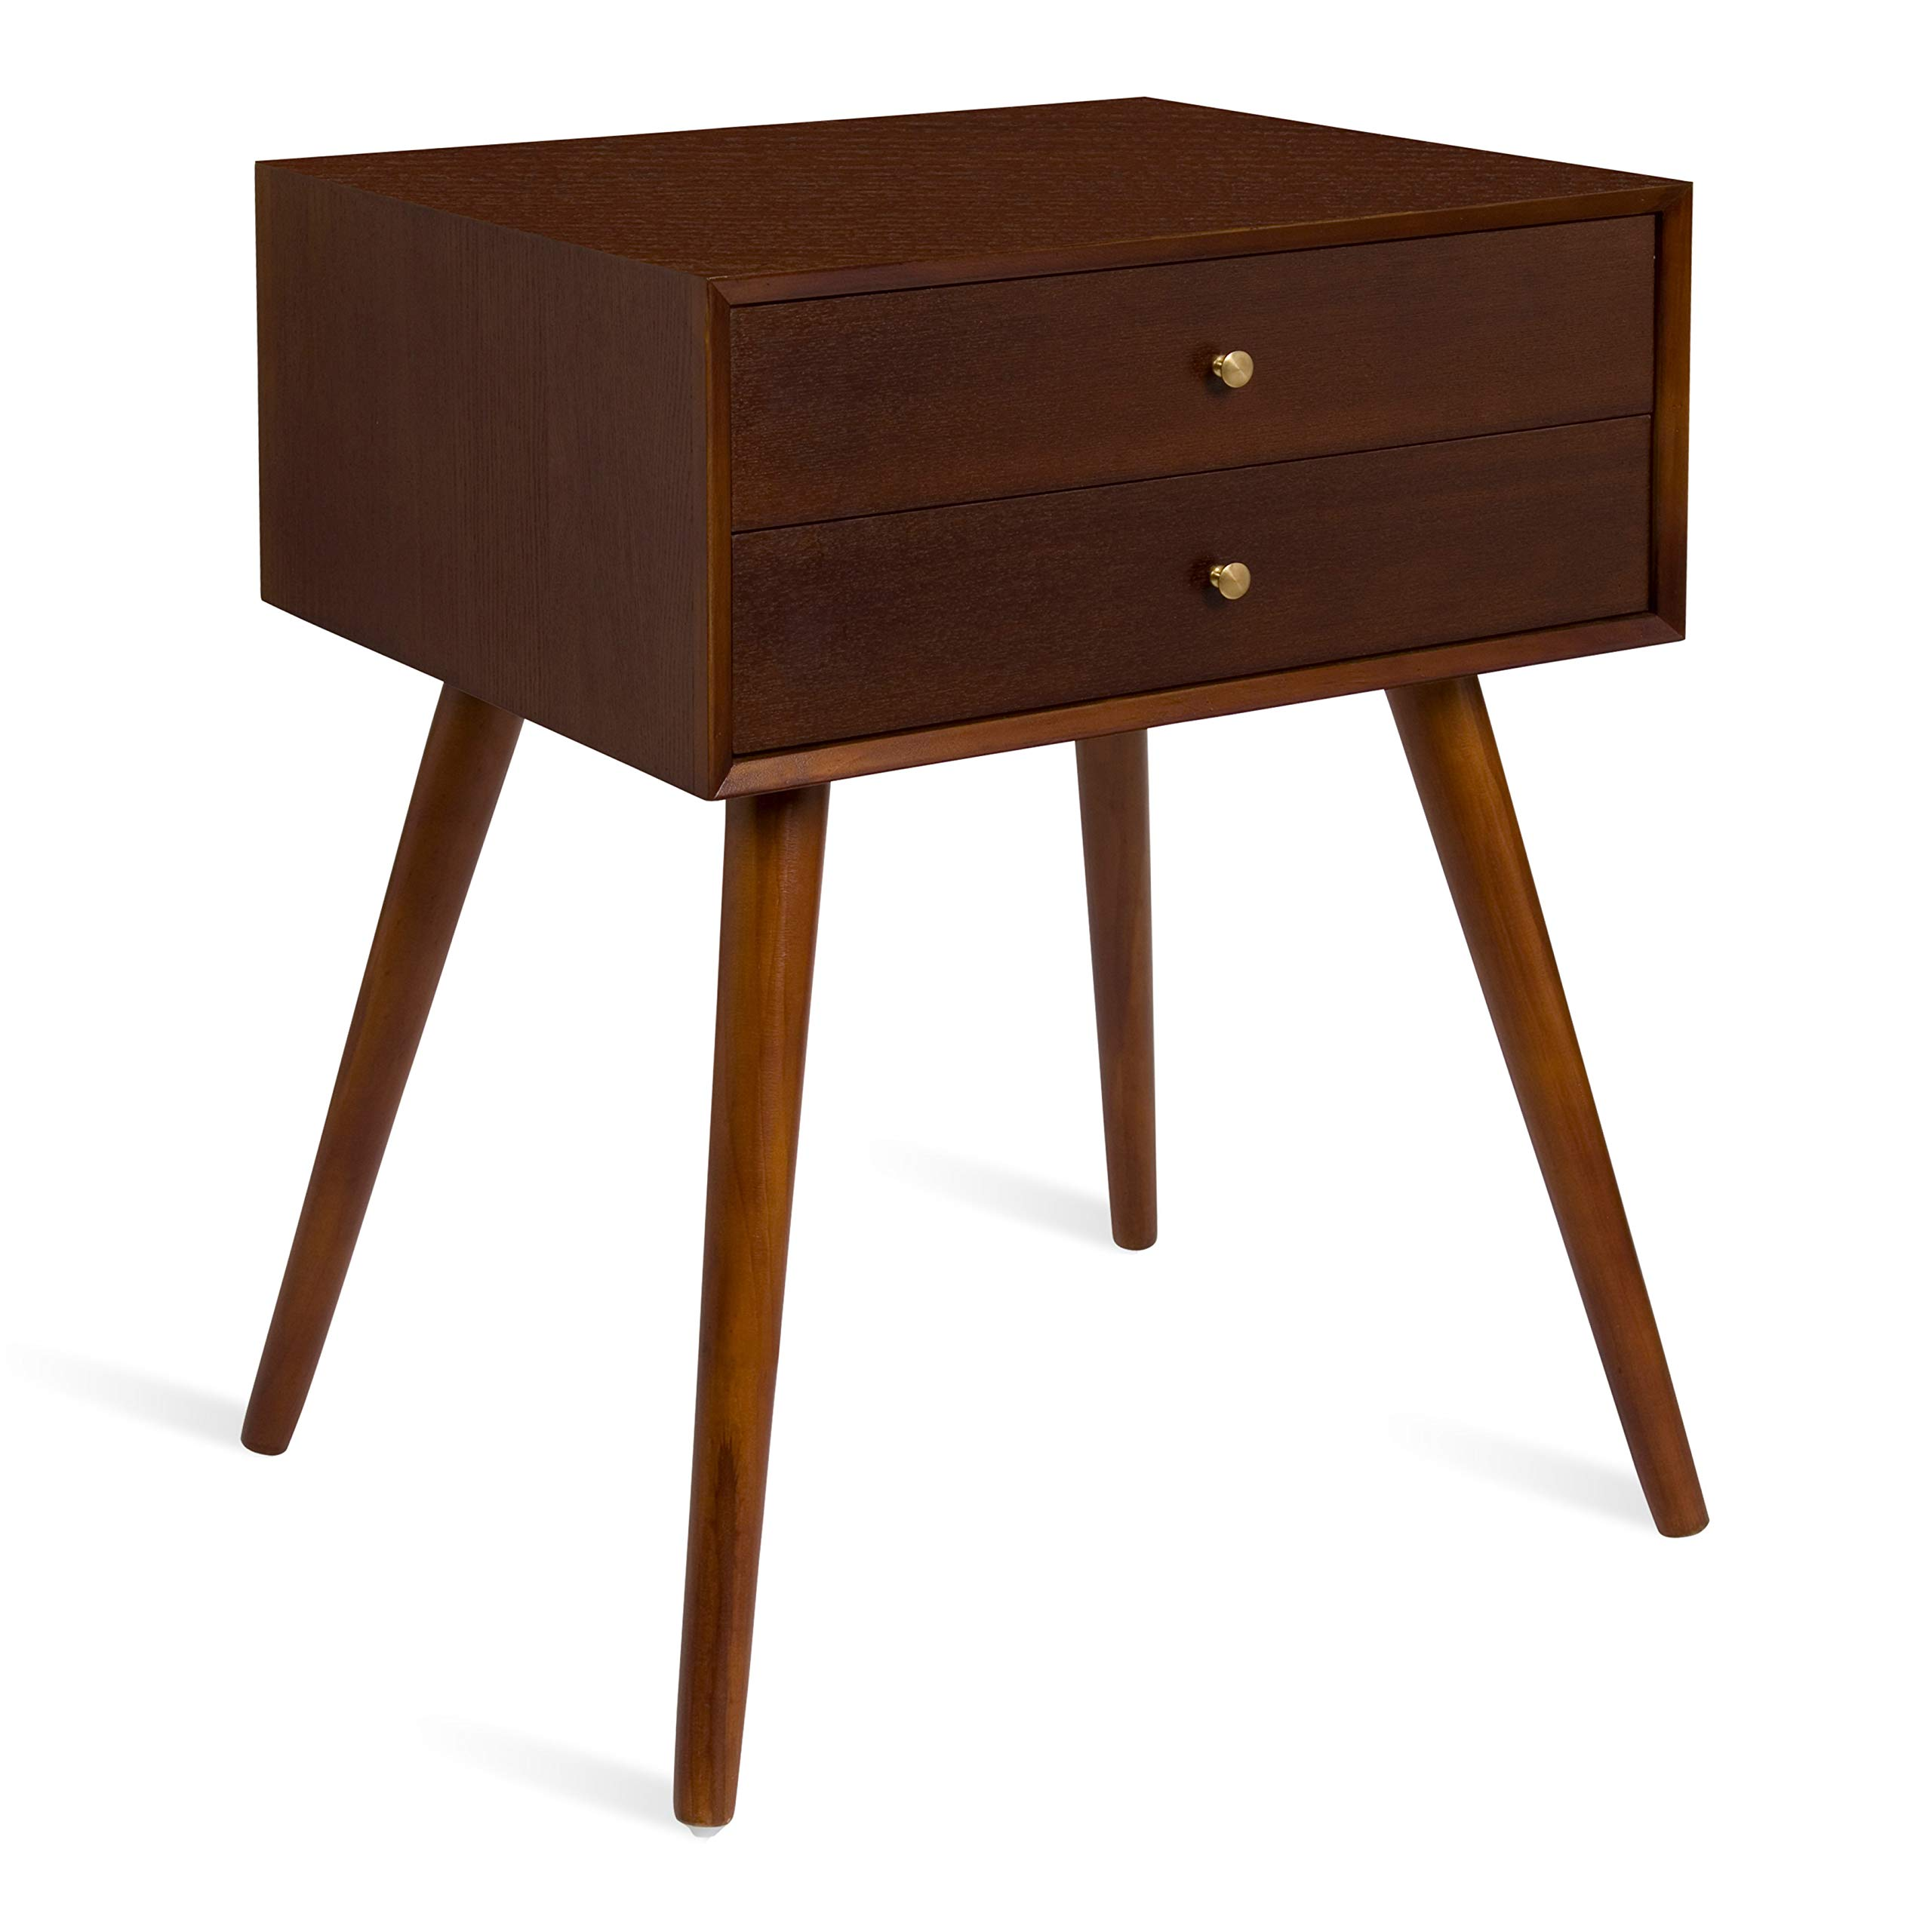 Kate and Laurel Finco Midcentury Modern Style Side Table with 2 Drawers, Walnut Brown Finish with Brass Hardware by Kate and Laurel